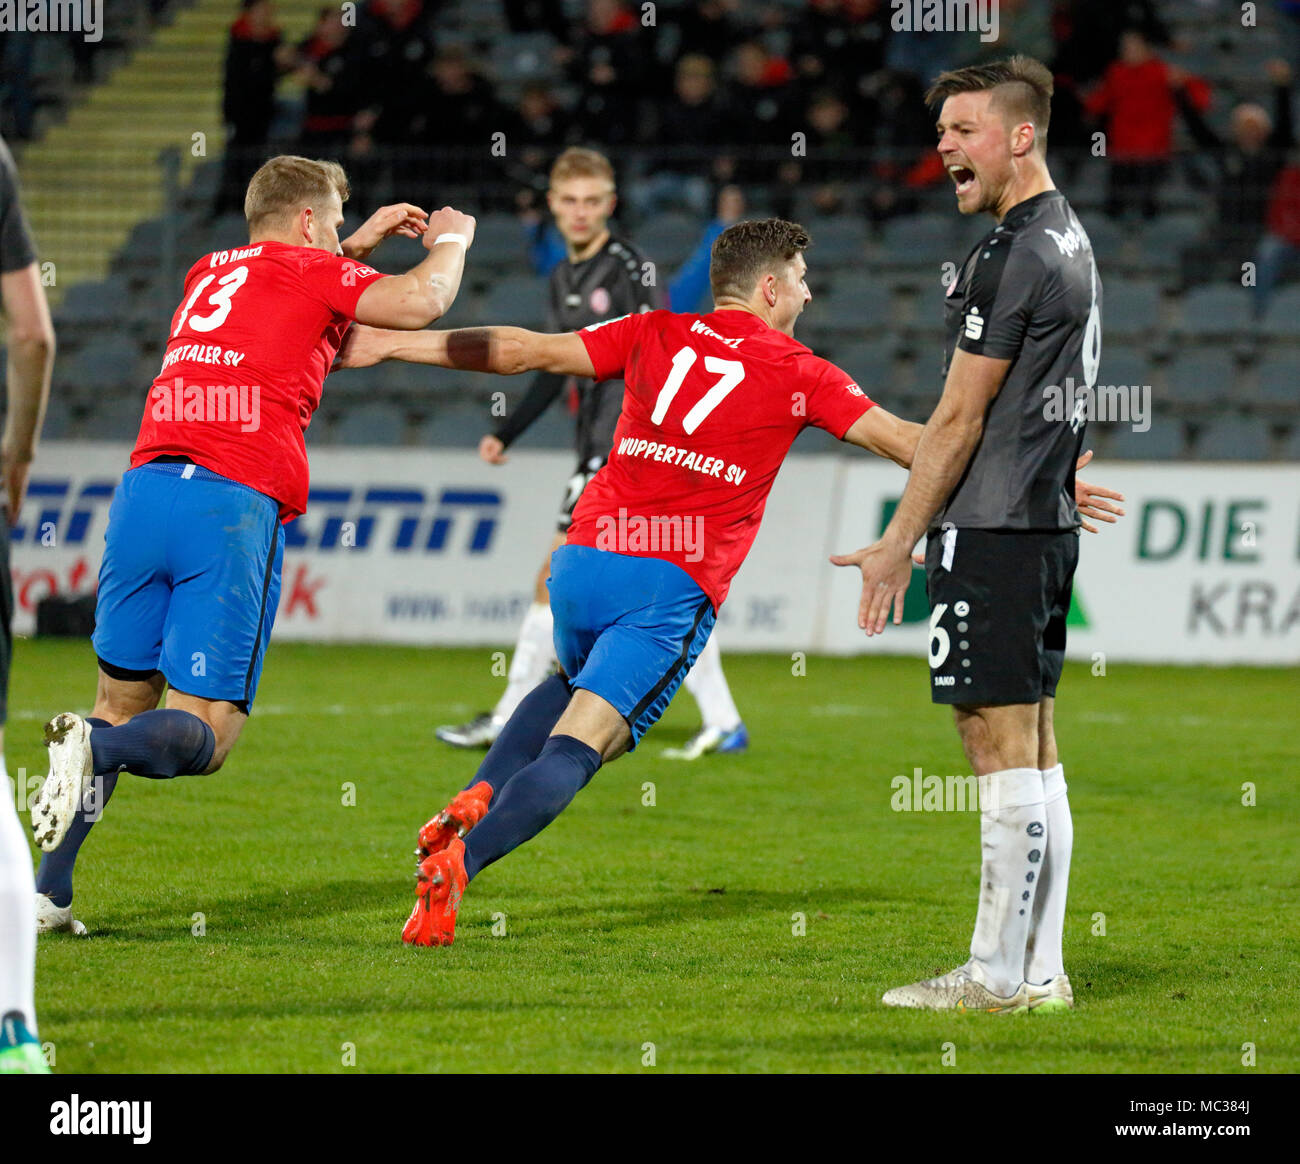 sports, football, Regional League West, 2017/2018, Wuppertaler SV vs Rot Weiss Essen 3:1, rejoicing at the 2:1 goal to Wuppertal, f.l.t.r. Christopher Kramer (WSV), triple goal scorer Enzo Wirtz (WSV), Timo Brauer (RWE) - Stock Image